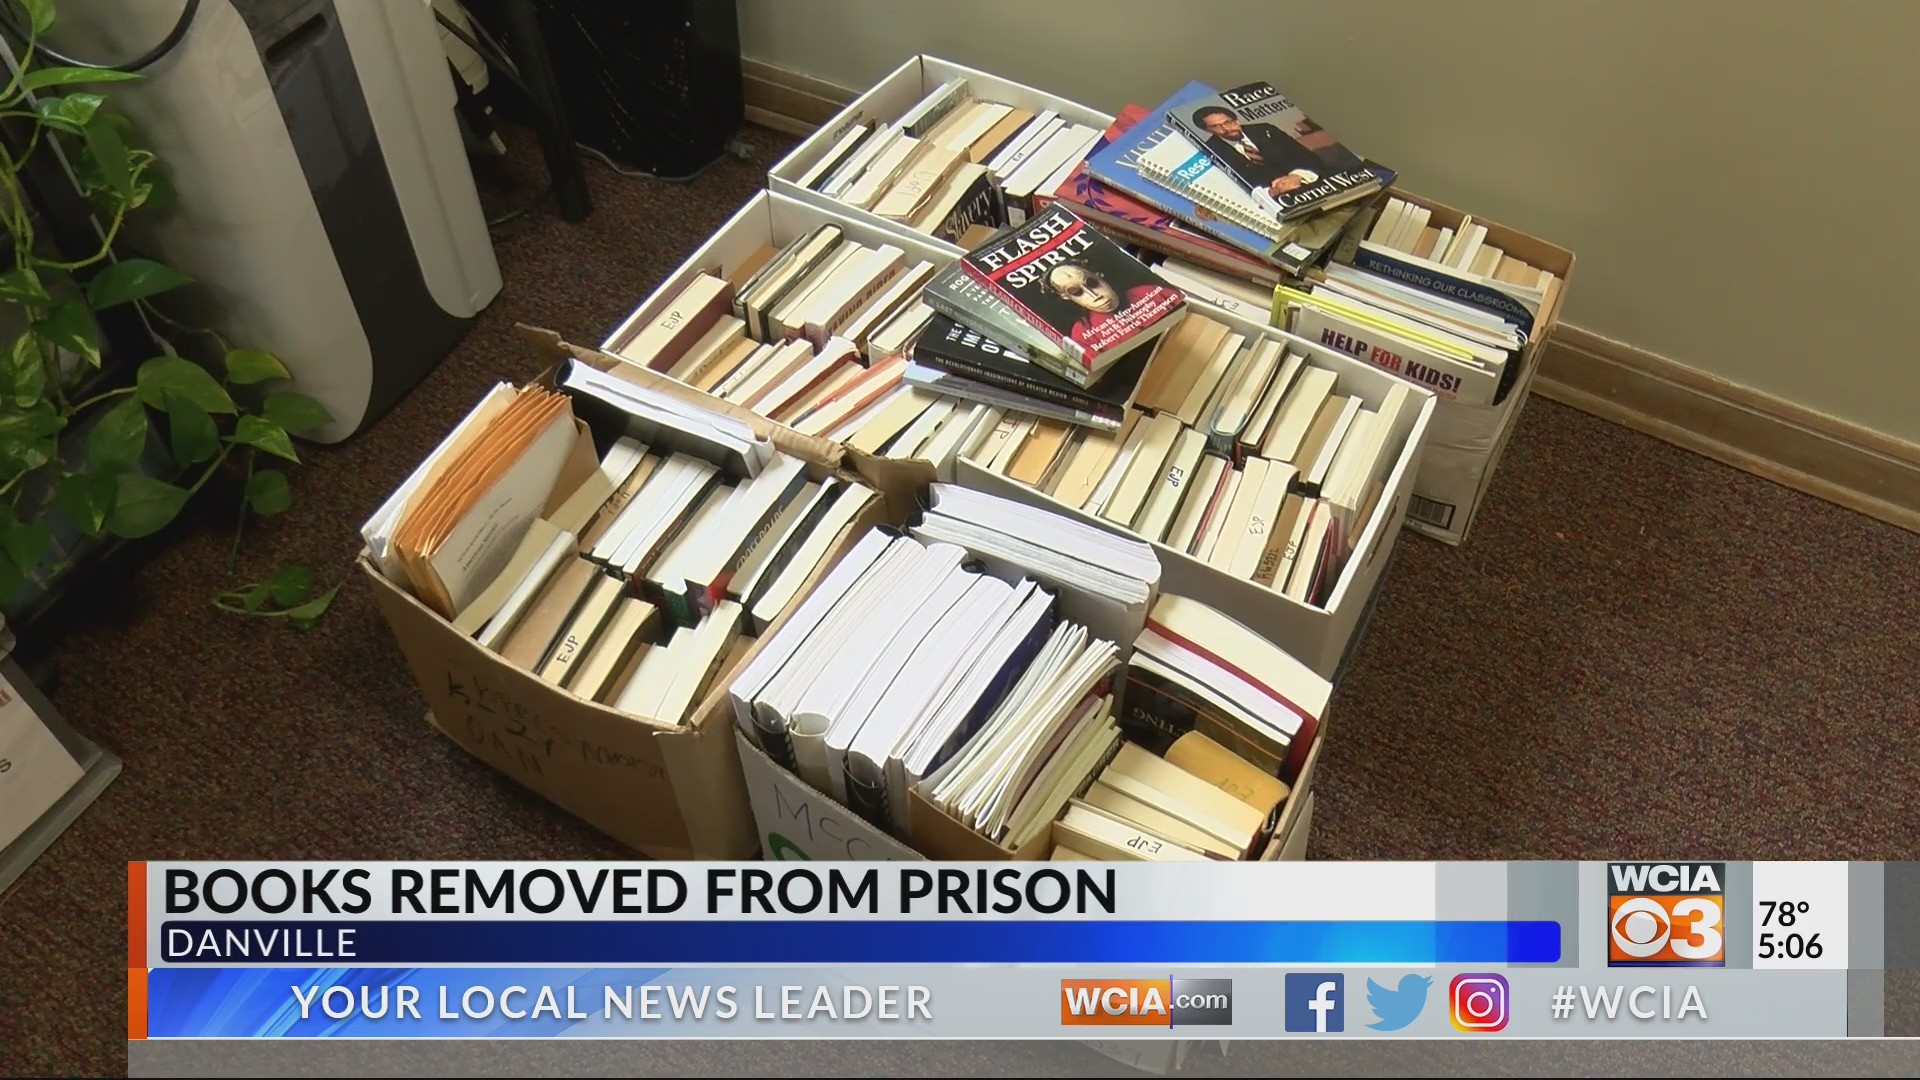 More than 200 books removed from prison